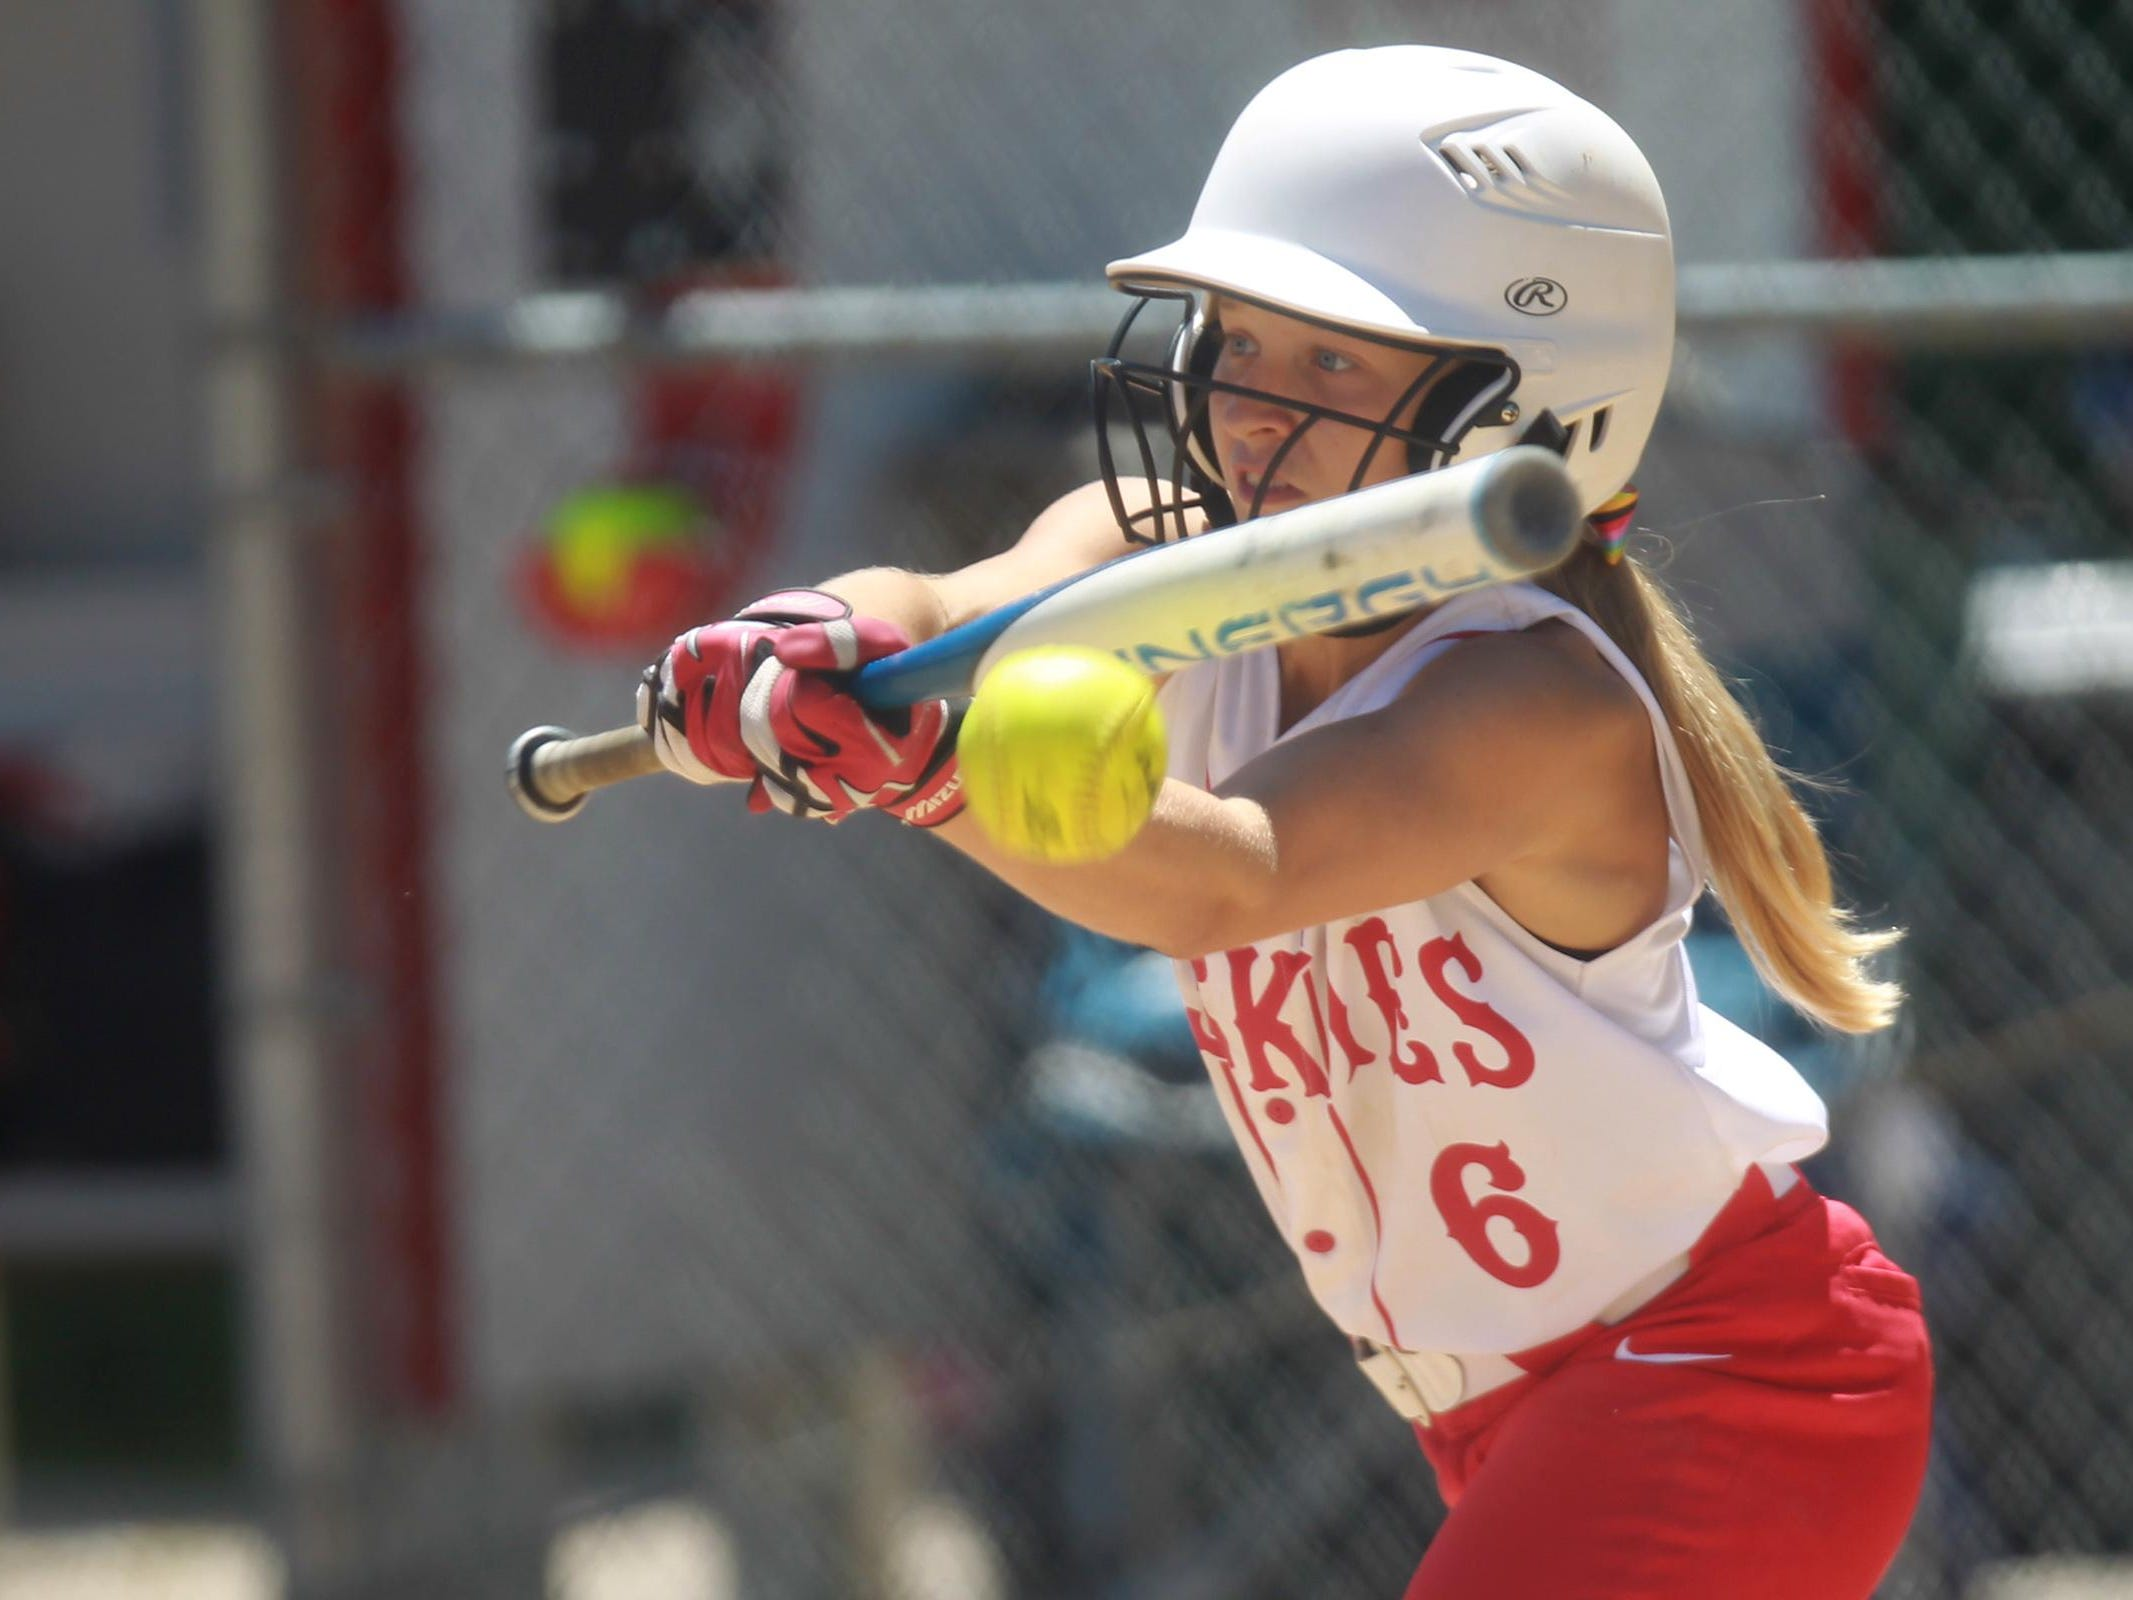 Highland's Kelsey Hora hits the ball during the Huskies' game against Waterloo East on Friday, June 20, 2014. David Scrivner / Iowa City Press-Citizen